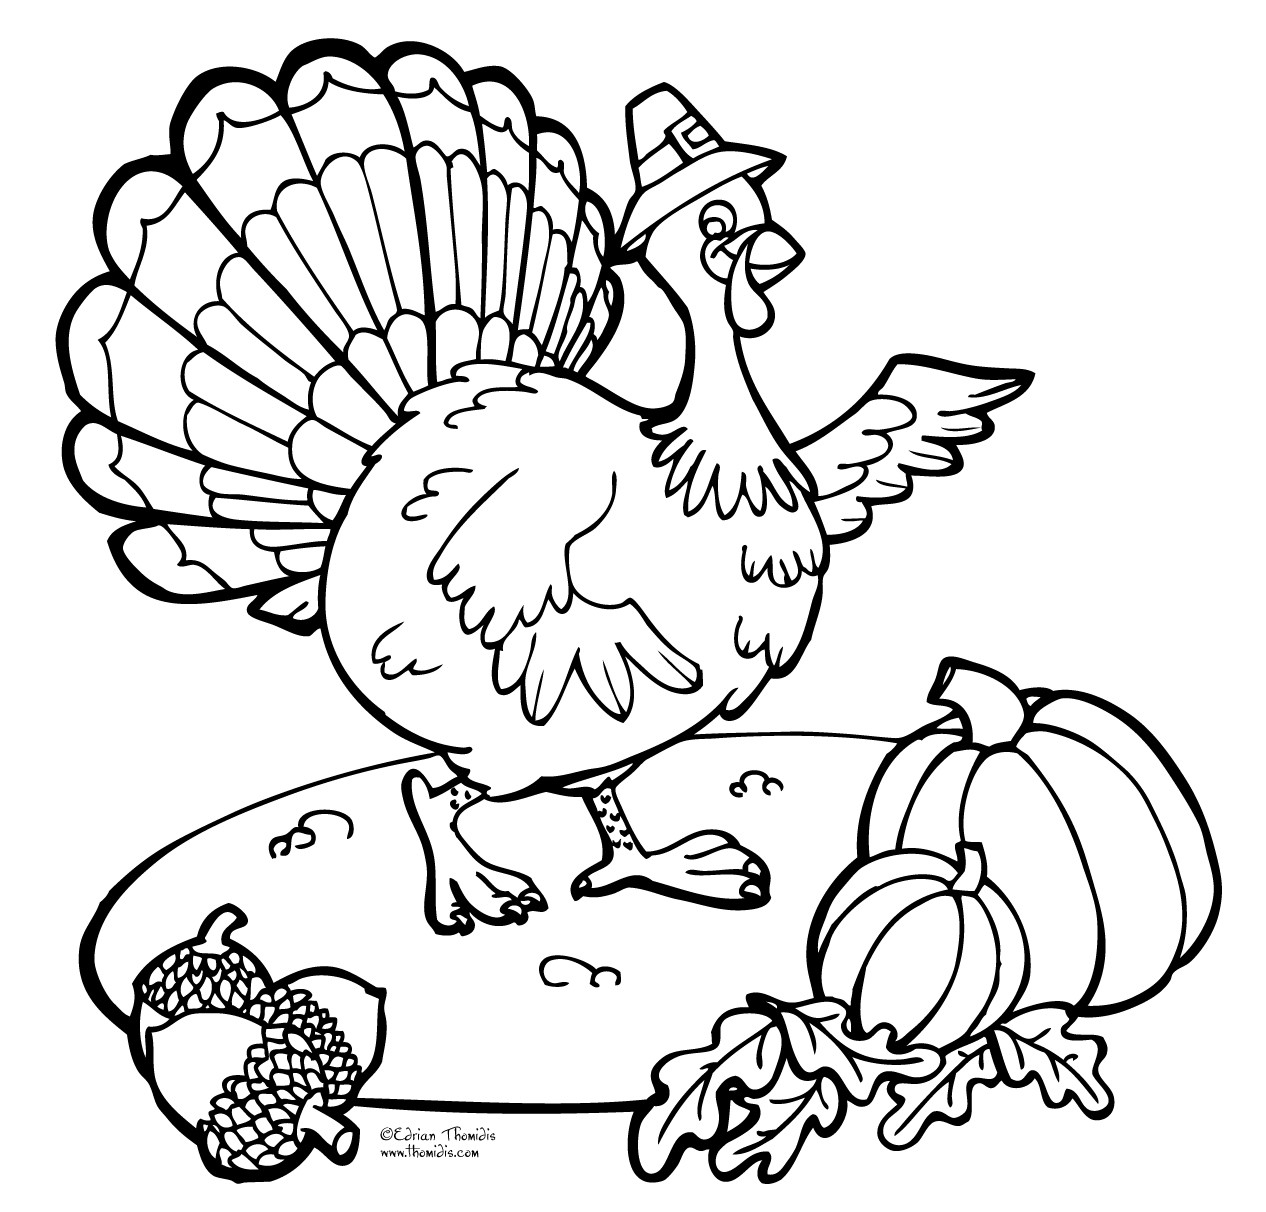 Thanksgiving Coloring Pages For Children  ThanksGiving Coloring Pages Free Printable